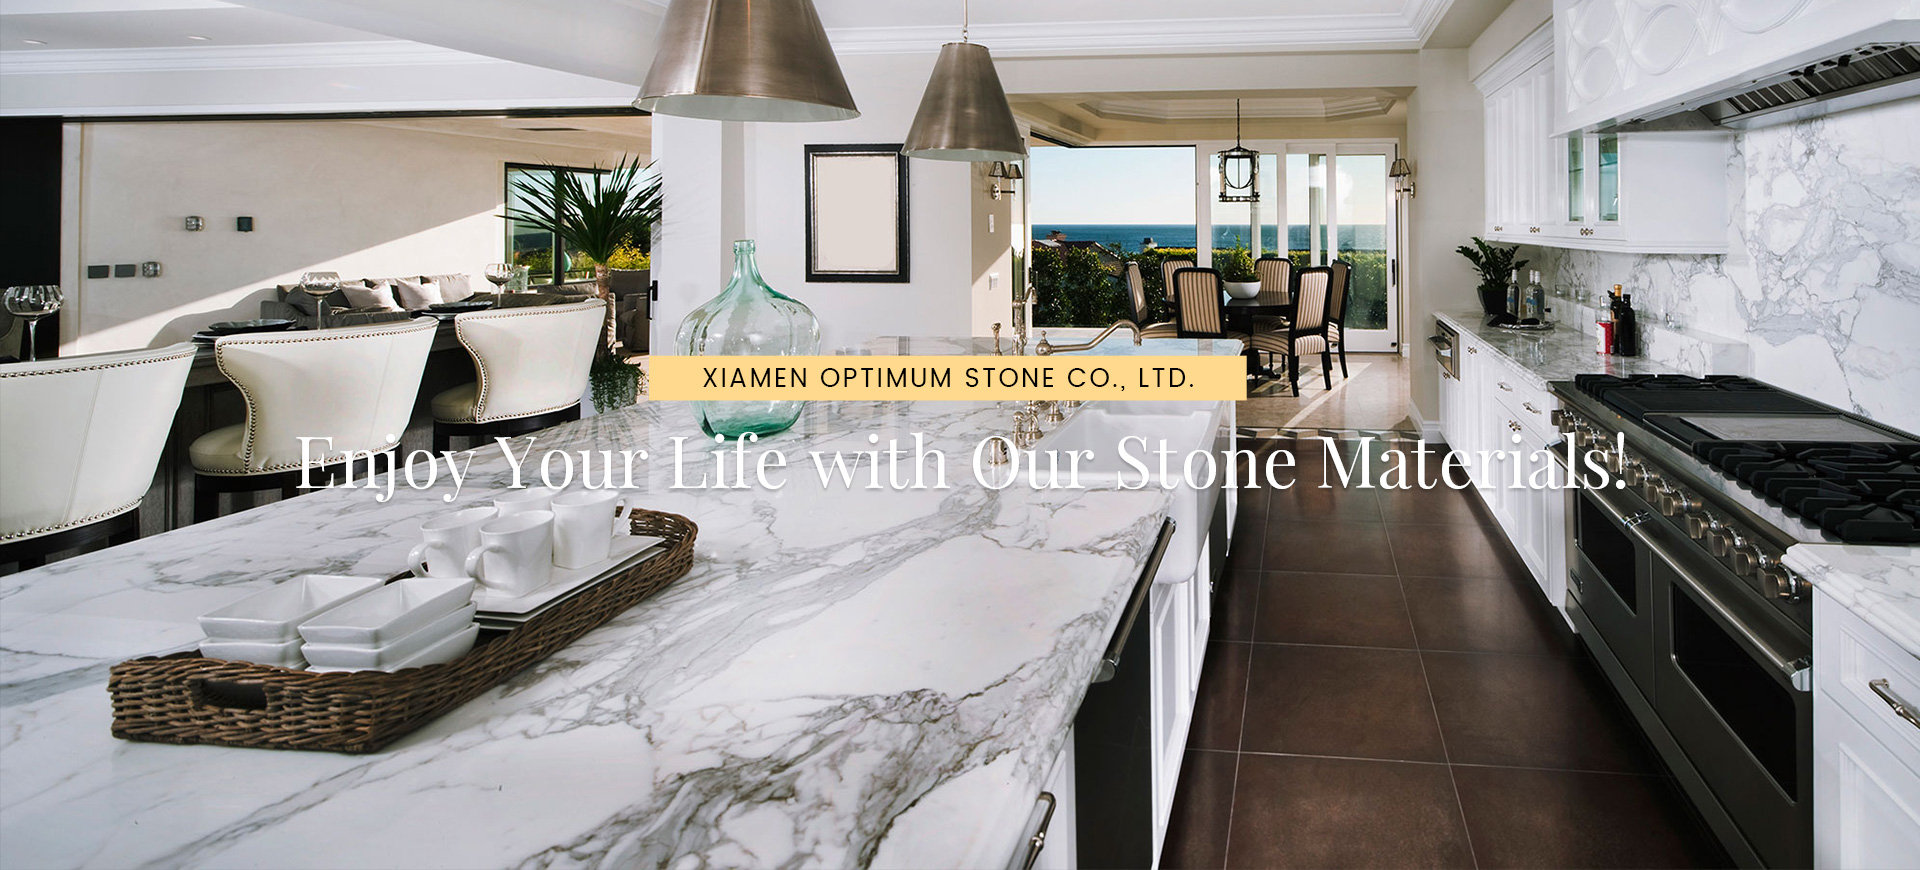 Quartz stone kitchen countertop